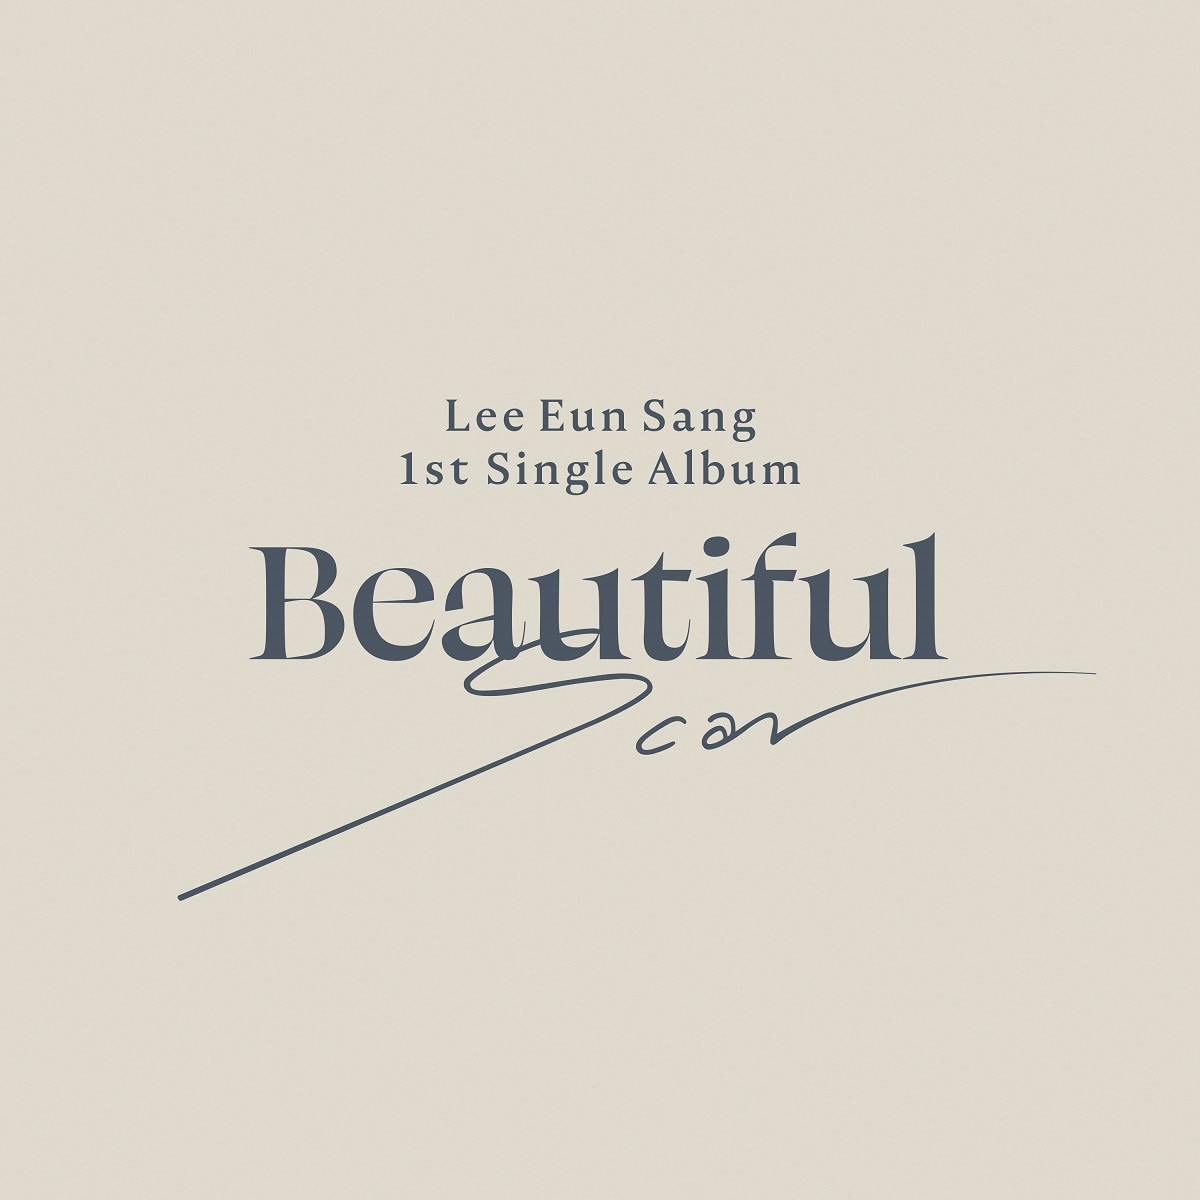 Beautiful ver.ㅣ이은상 - BEAUTIFUL SCAR (1ST 싱글앨범)